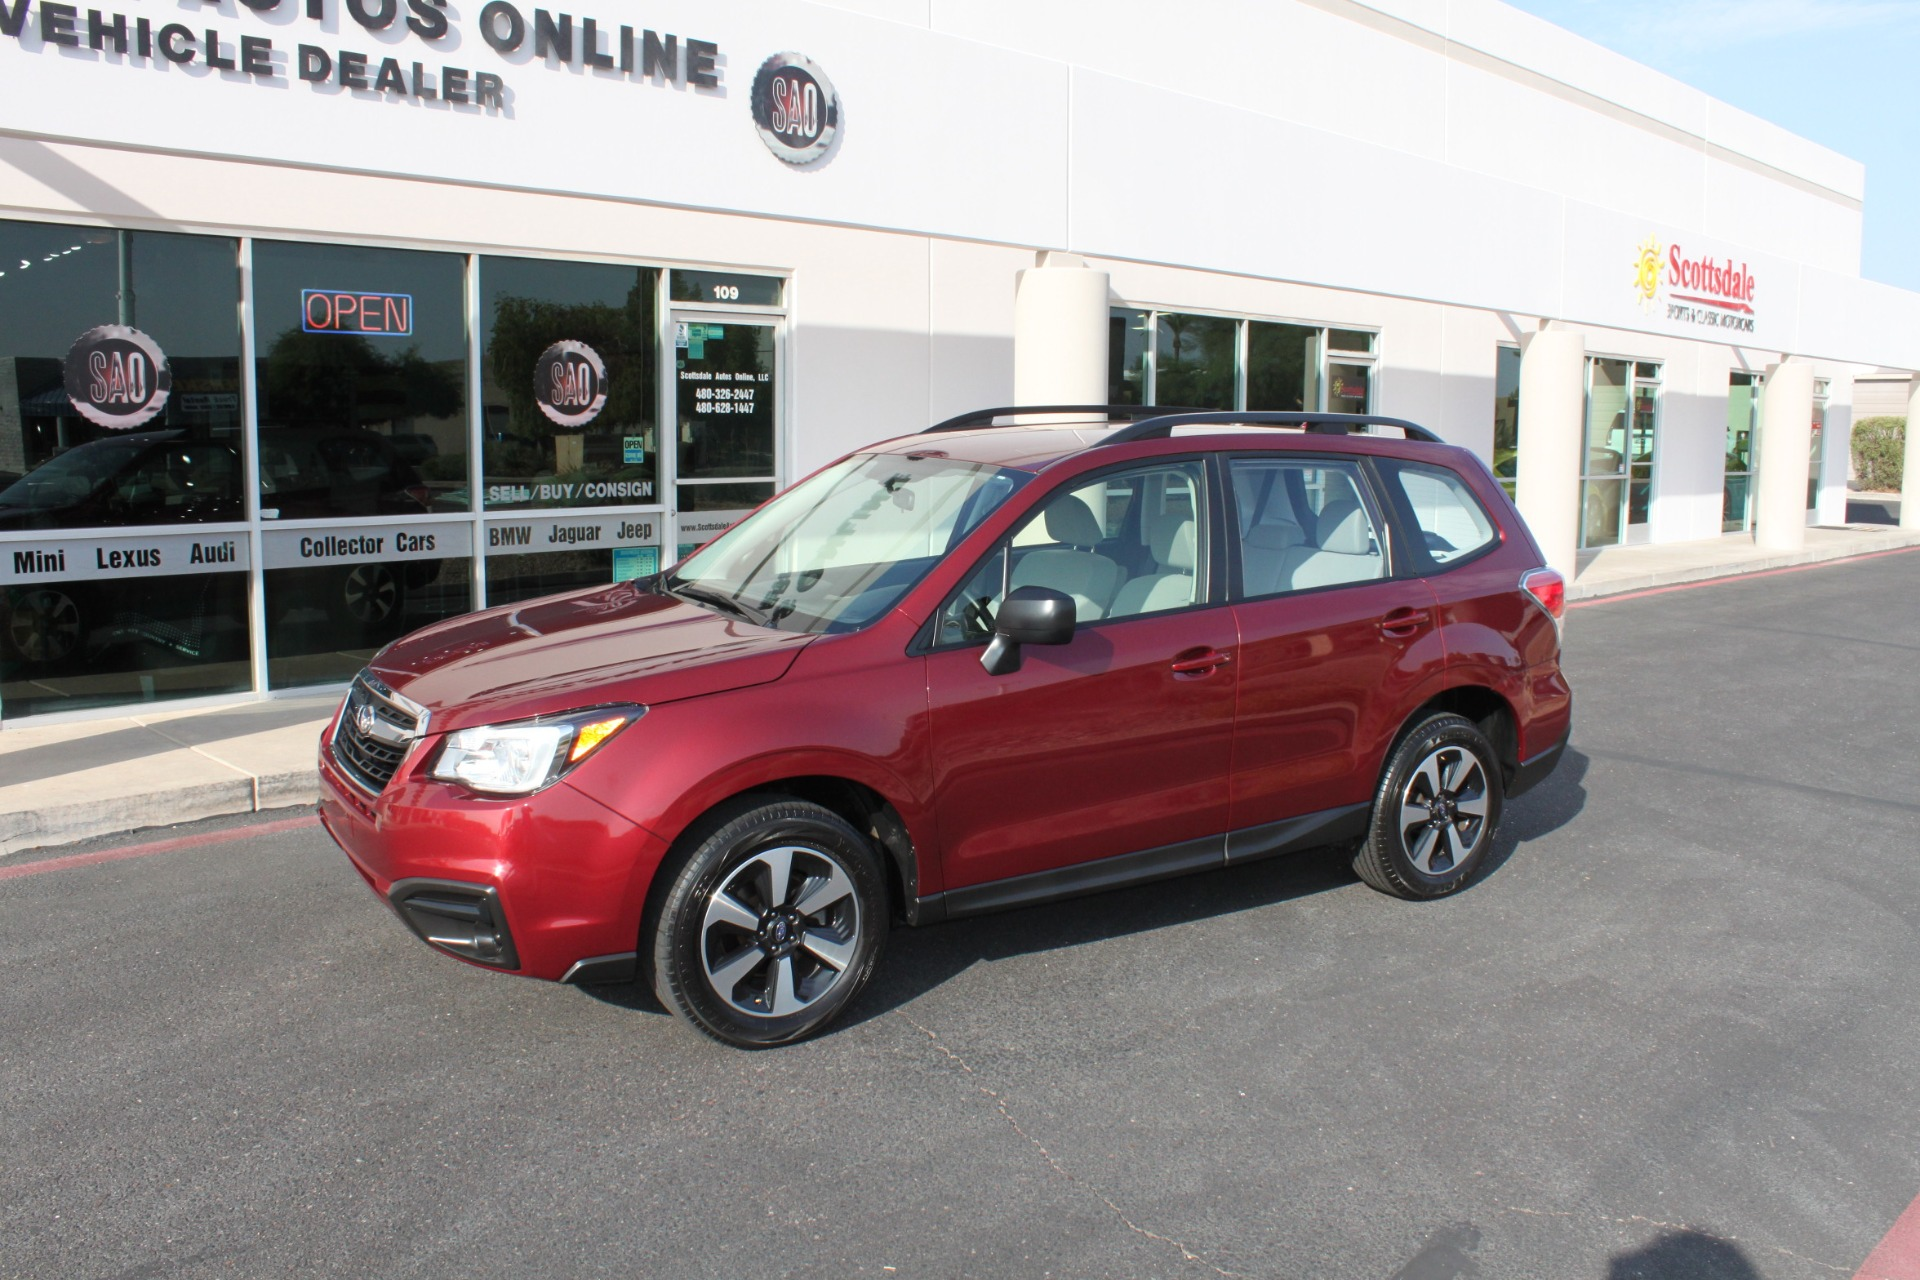 Used-2017-Subaru-Forester-25i-All-Wheel-Drive-Cherokee